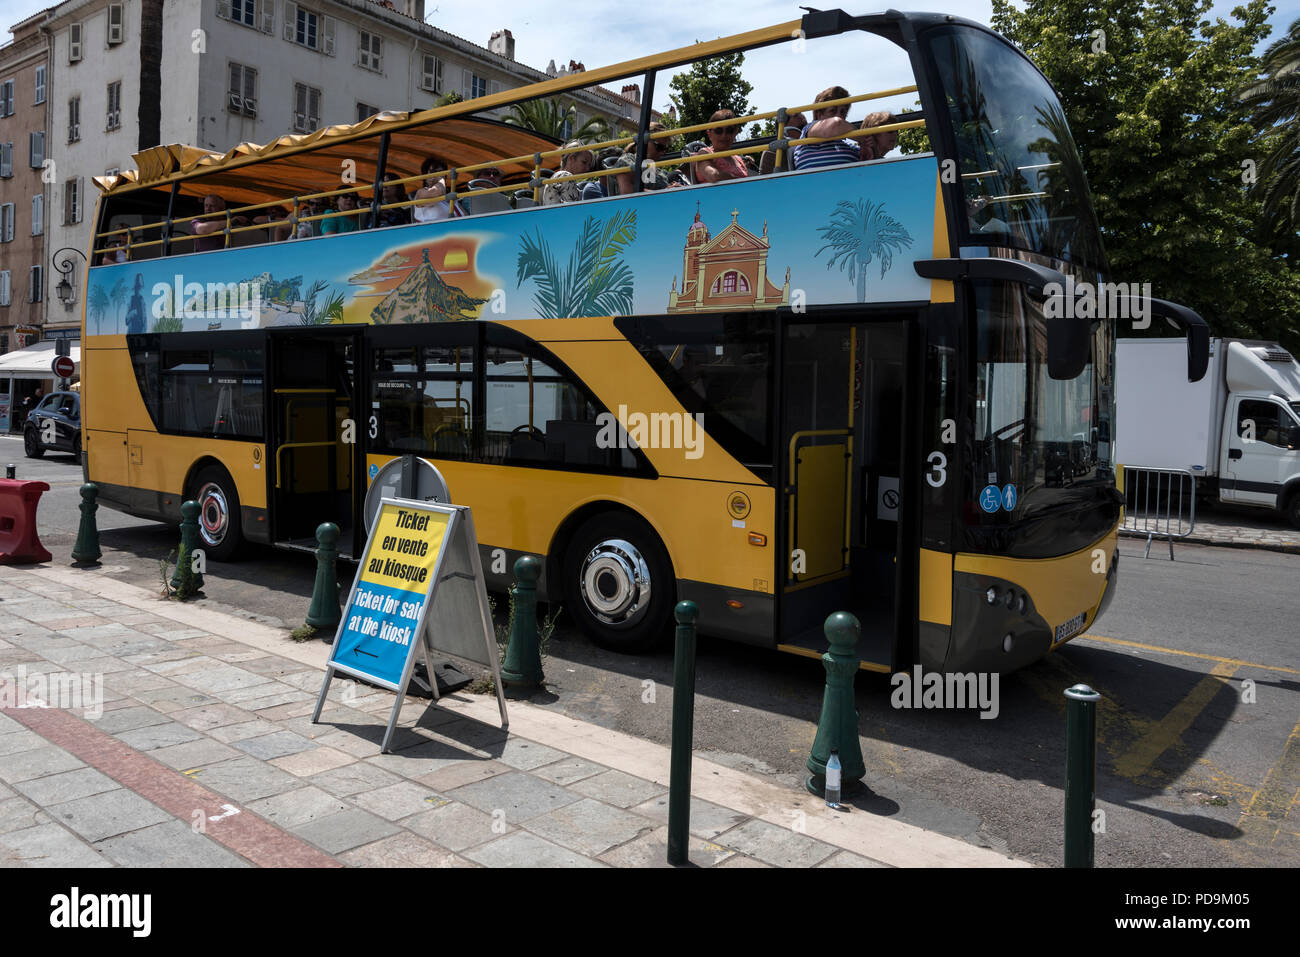 A tourist double-decker bus in a street in Ajaccio on